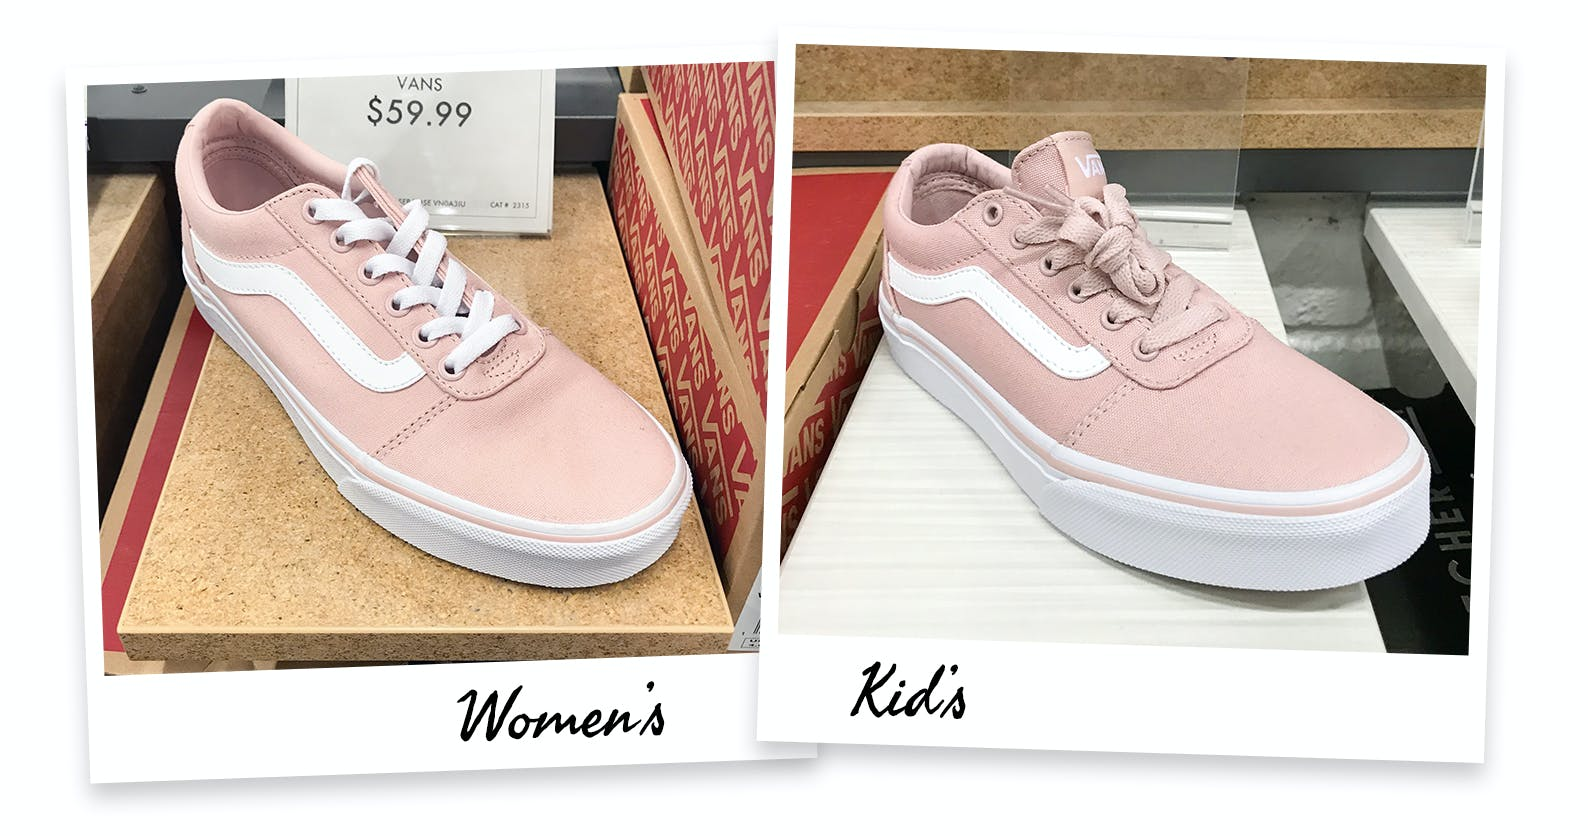 rosario bebida Enmarañarse  هيبة الحوت الأزرق تثاءب vans toddler shoe size chart - bluecypressrealty.com